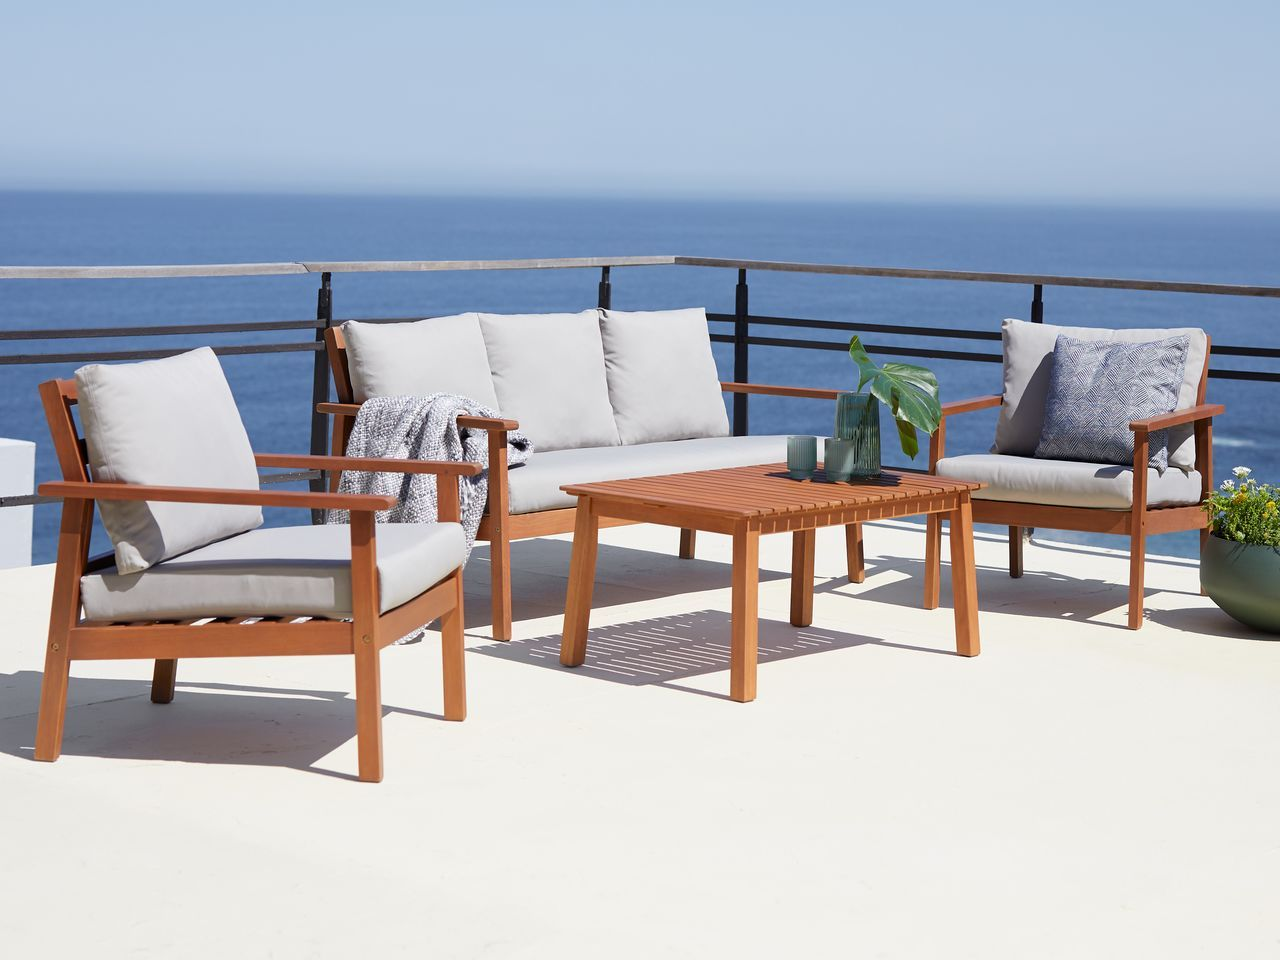 Pin By Tinka 133 On Home In 2020 Outdoor Lounge Set Outdoor Furniture Sets Lounge Set Garden